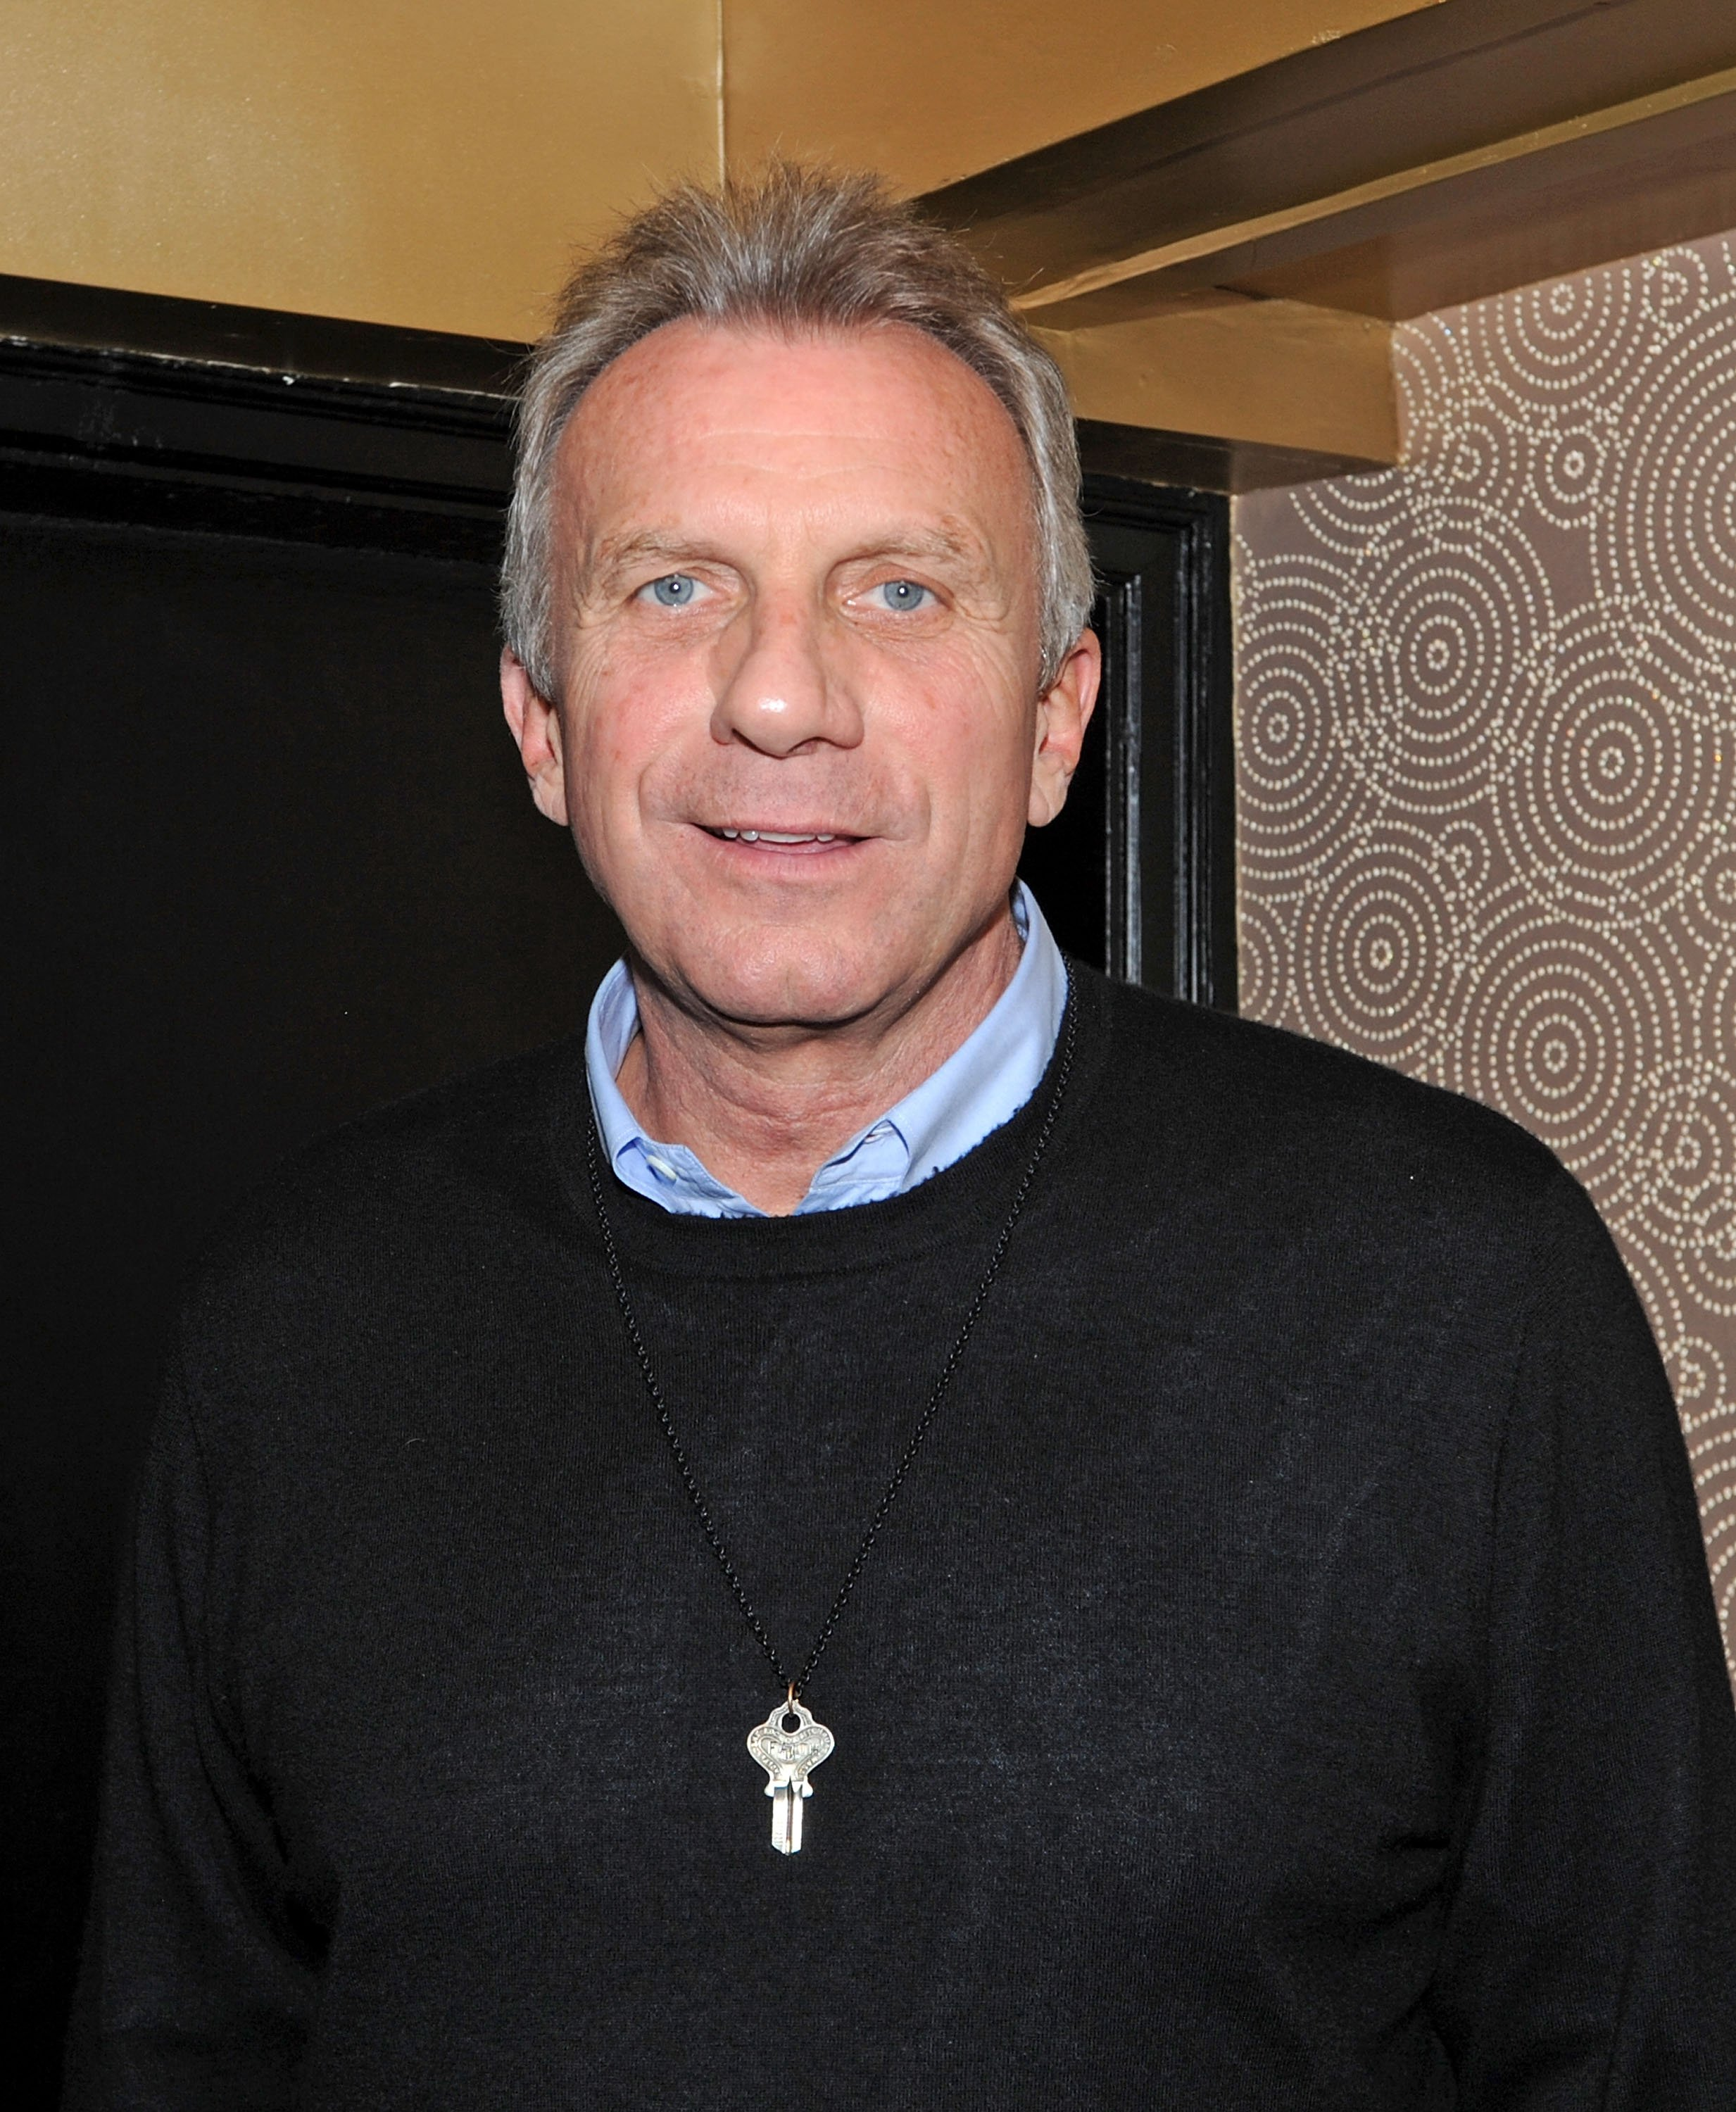 Former NFL quarterback Joe Montana at The Catch Game Day Experience at The Edison Ballroom in New York City | Photo: Bobby Bank/Getty Images